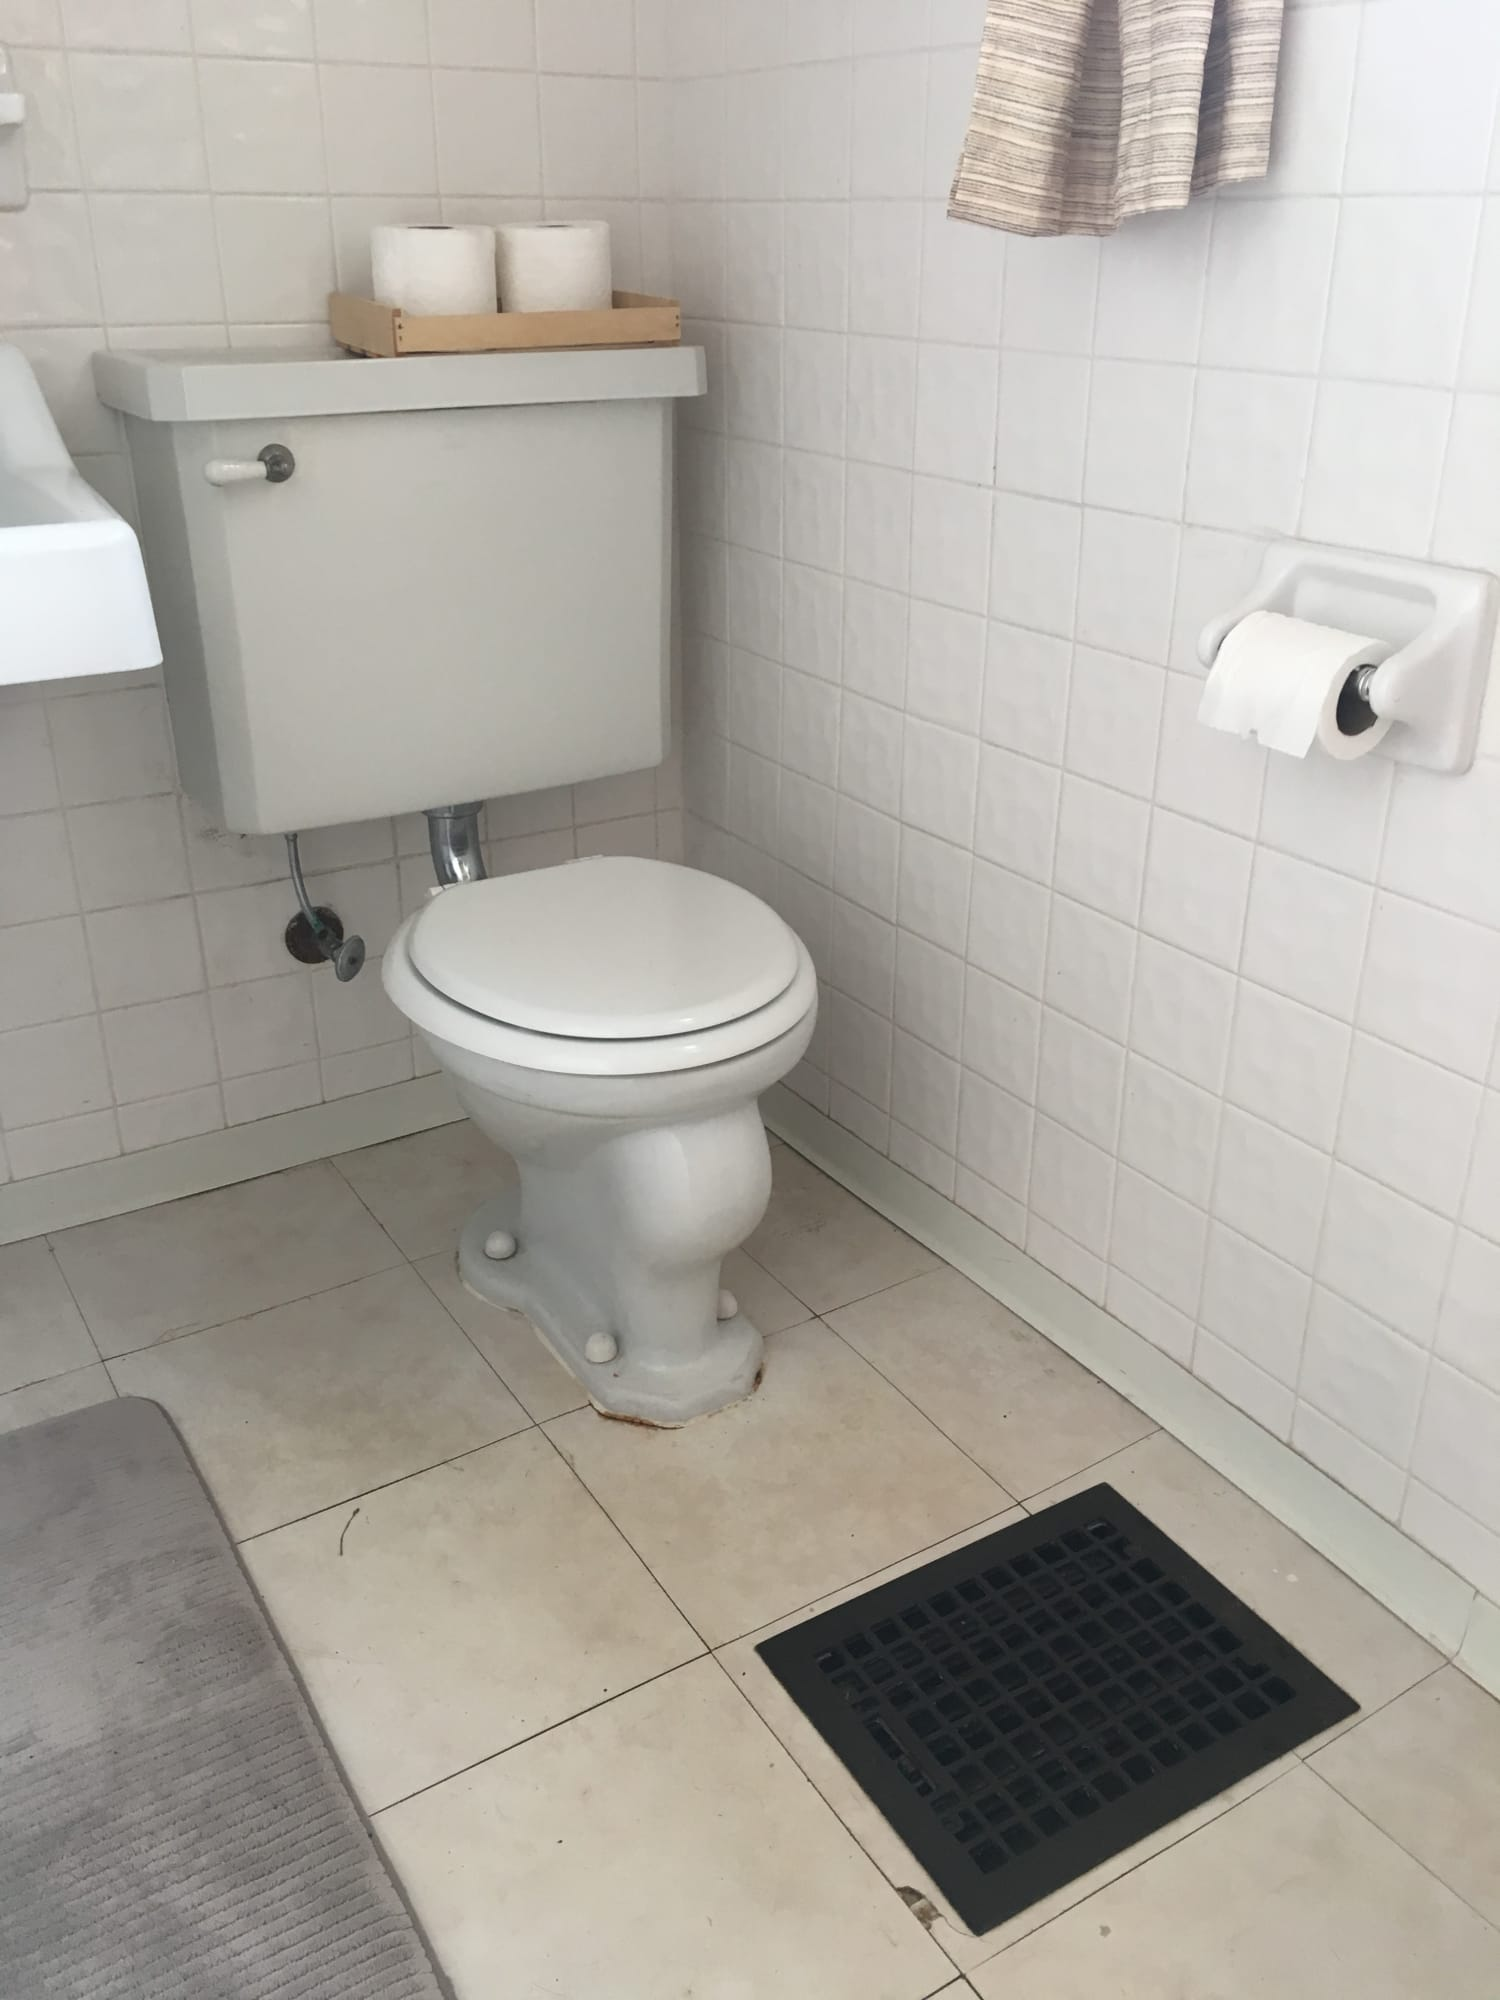 This $50 Temporary Flooring Floats Right Over Rental Bathroom Tile